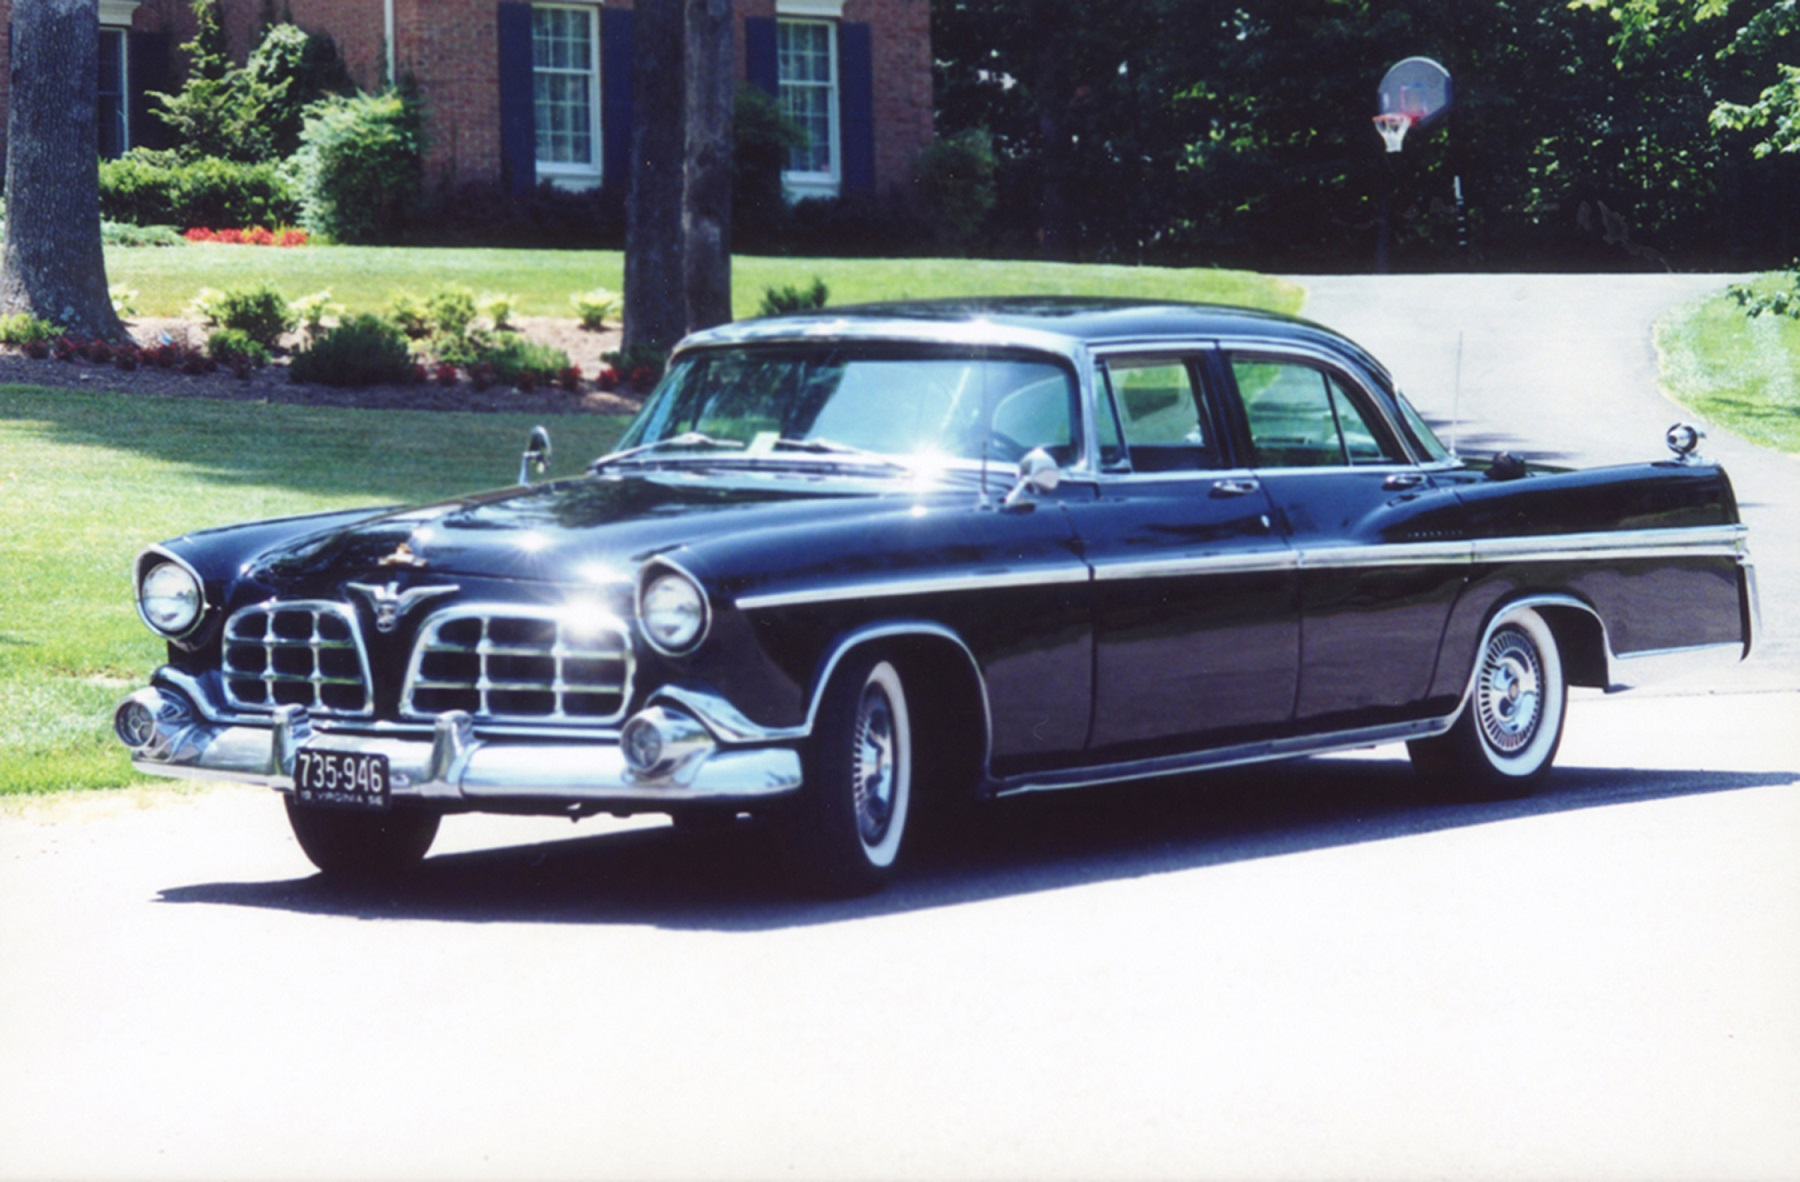 1956 chrysler imperial interior images - 1956 Chrysler Imperial Fifties Tailfin Flair News Sports Jobs Adirondack Daily Enterprise